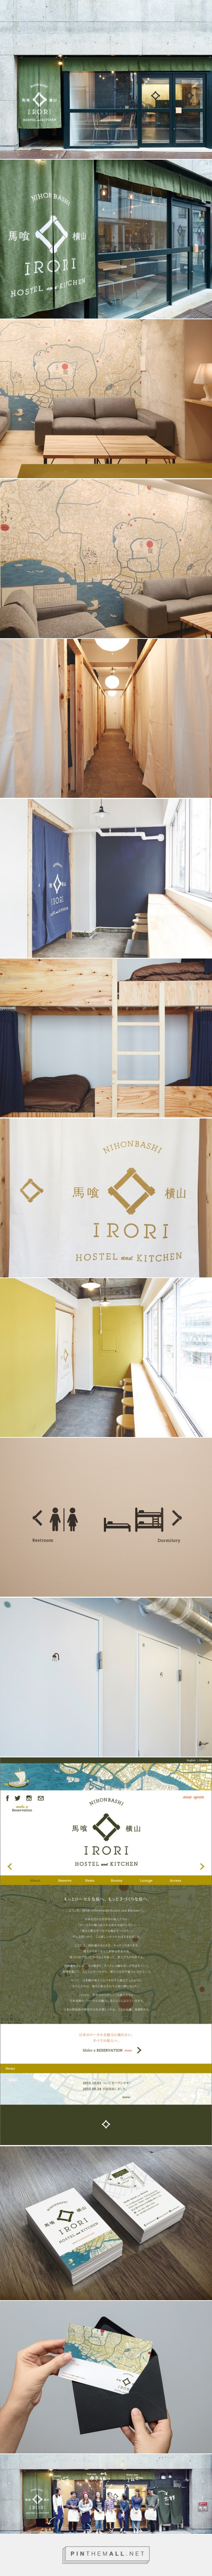 IRORI飯店 識別設計 | MyDesy 淘靈感... - a grouped images picture - Pin Them All